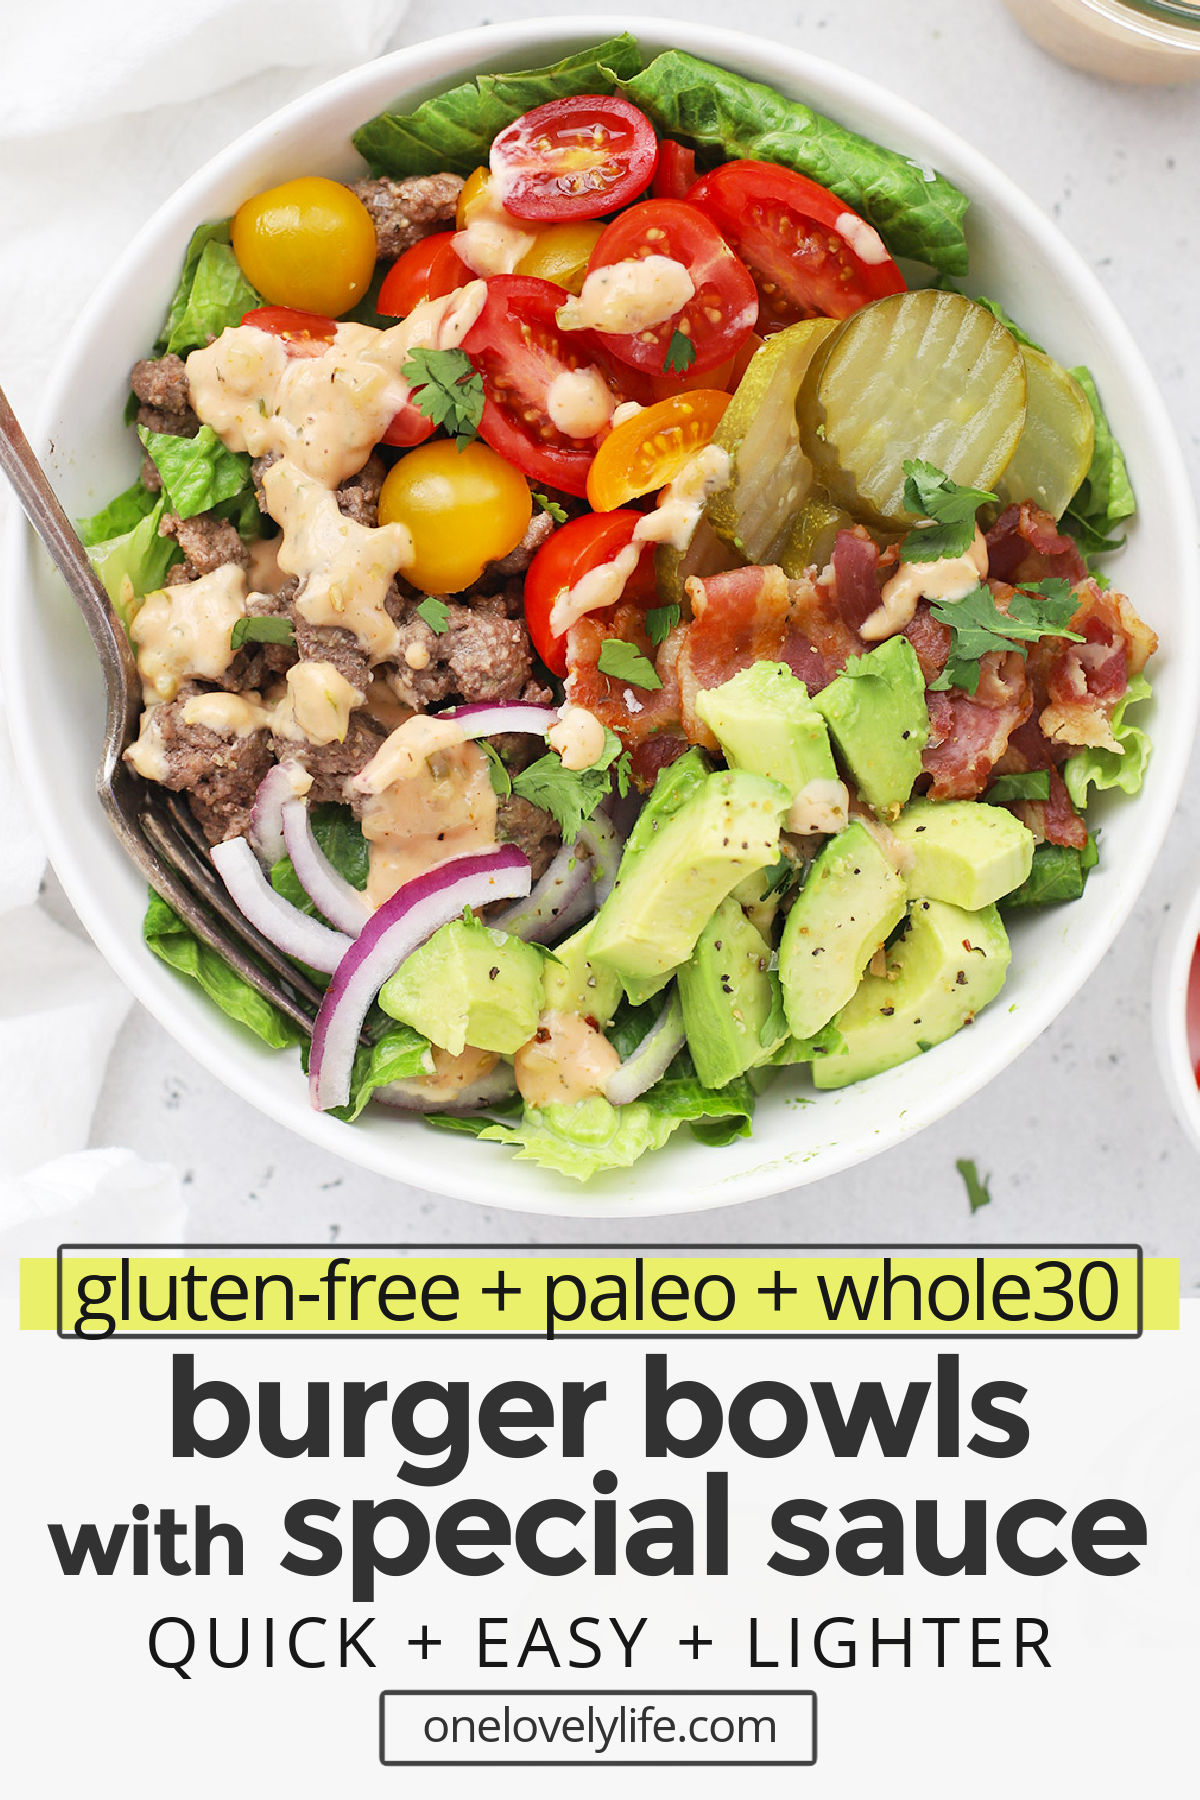 Burger Bowls with Special Sauce - Load all your favorite hamburger toppings onto a bed of greens and drizzle with our favorite special sauce to build an amazing burger salad. (Gluten-Free, Paleo & Whole30-Friendly) // Whole30 Burger Bowls // Special Sauce for Burgers // Paleo Burger Bowl // Burger Salad #paleo #glutenfree #whole30